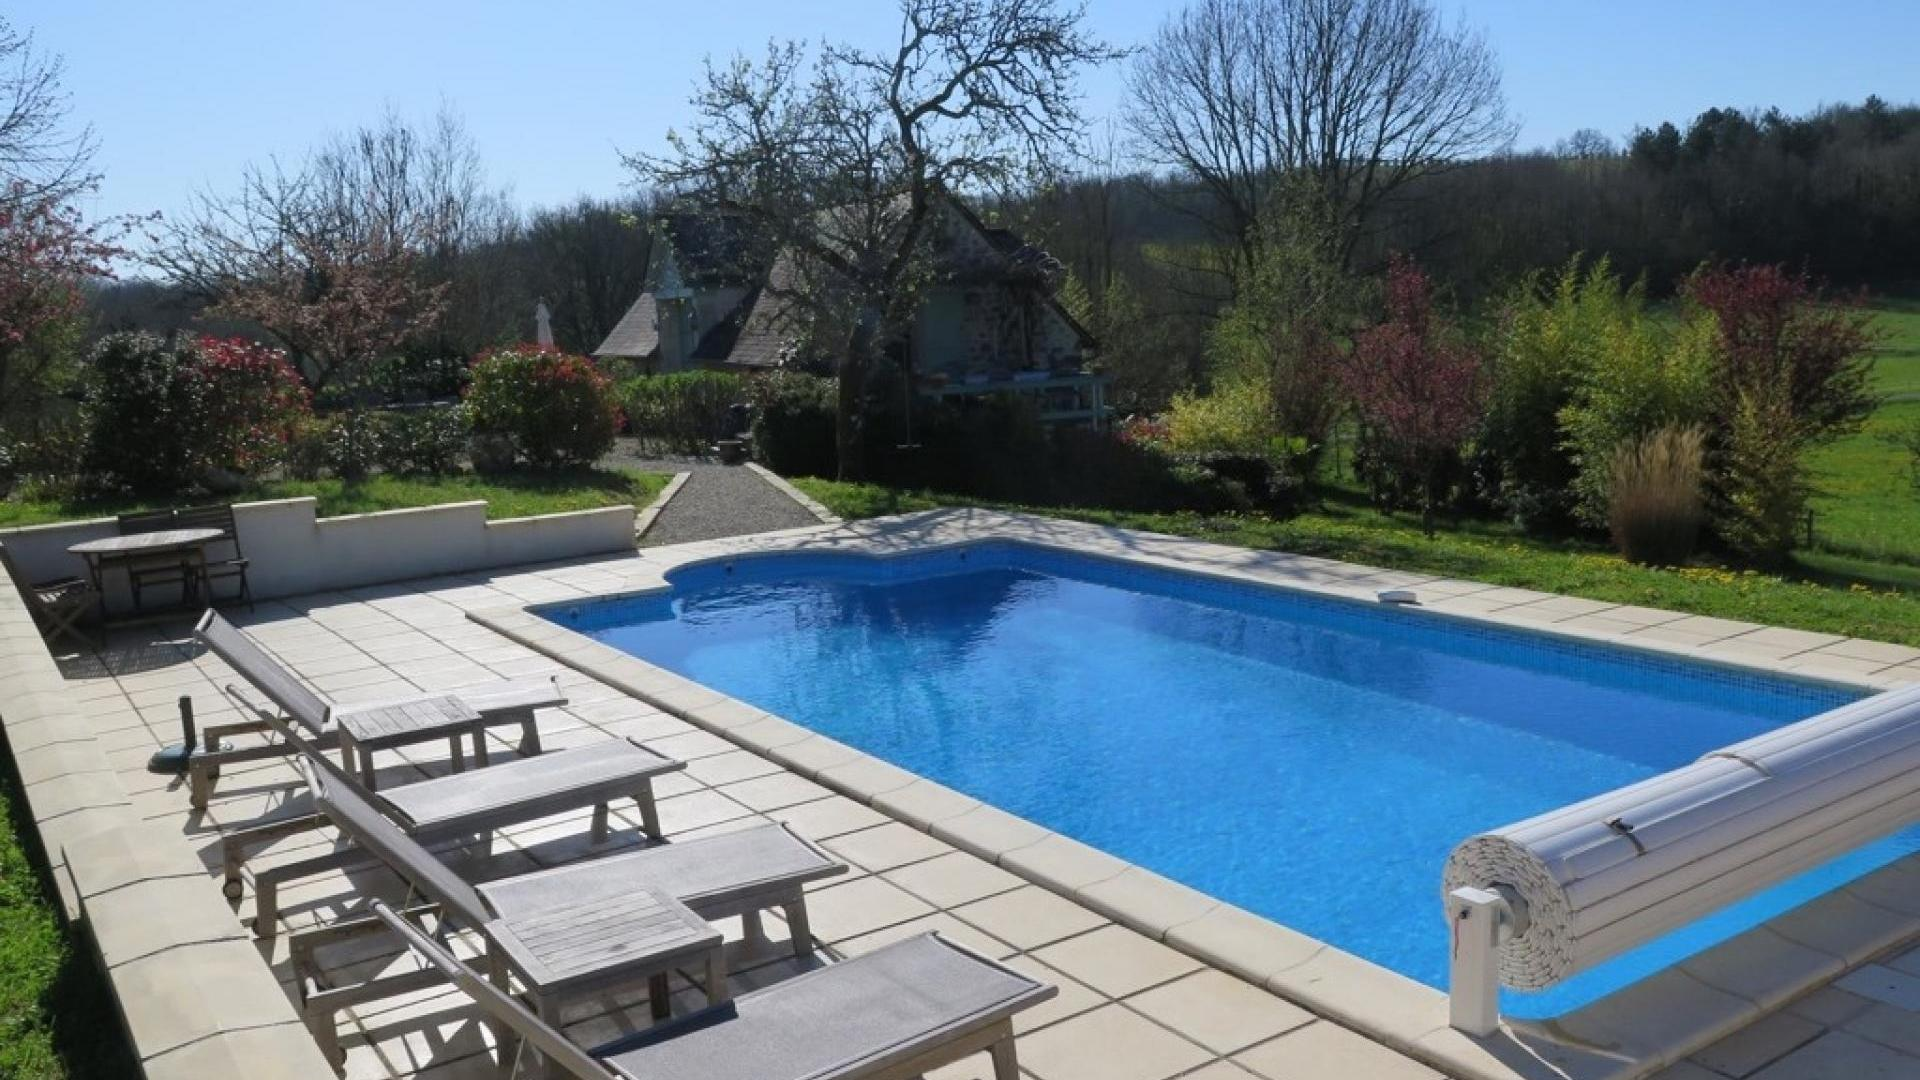 4 Bedroom Private house in Limousin, France